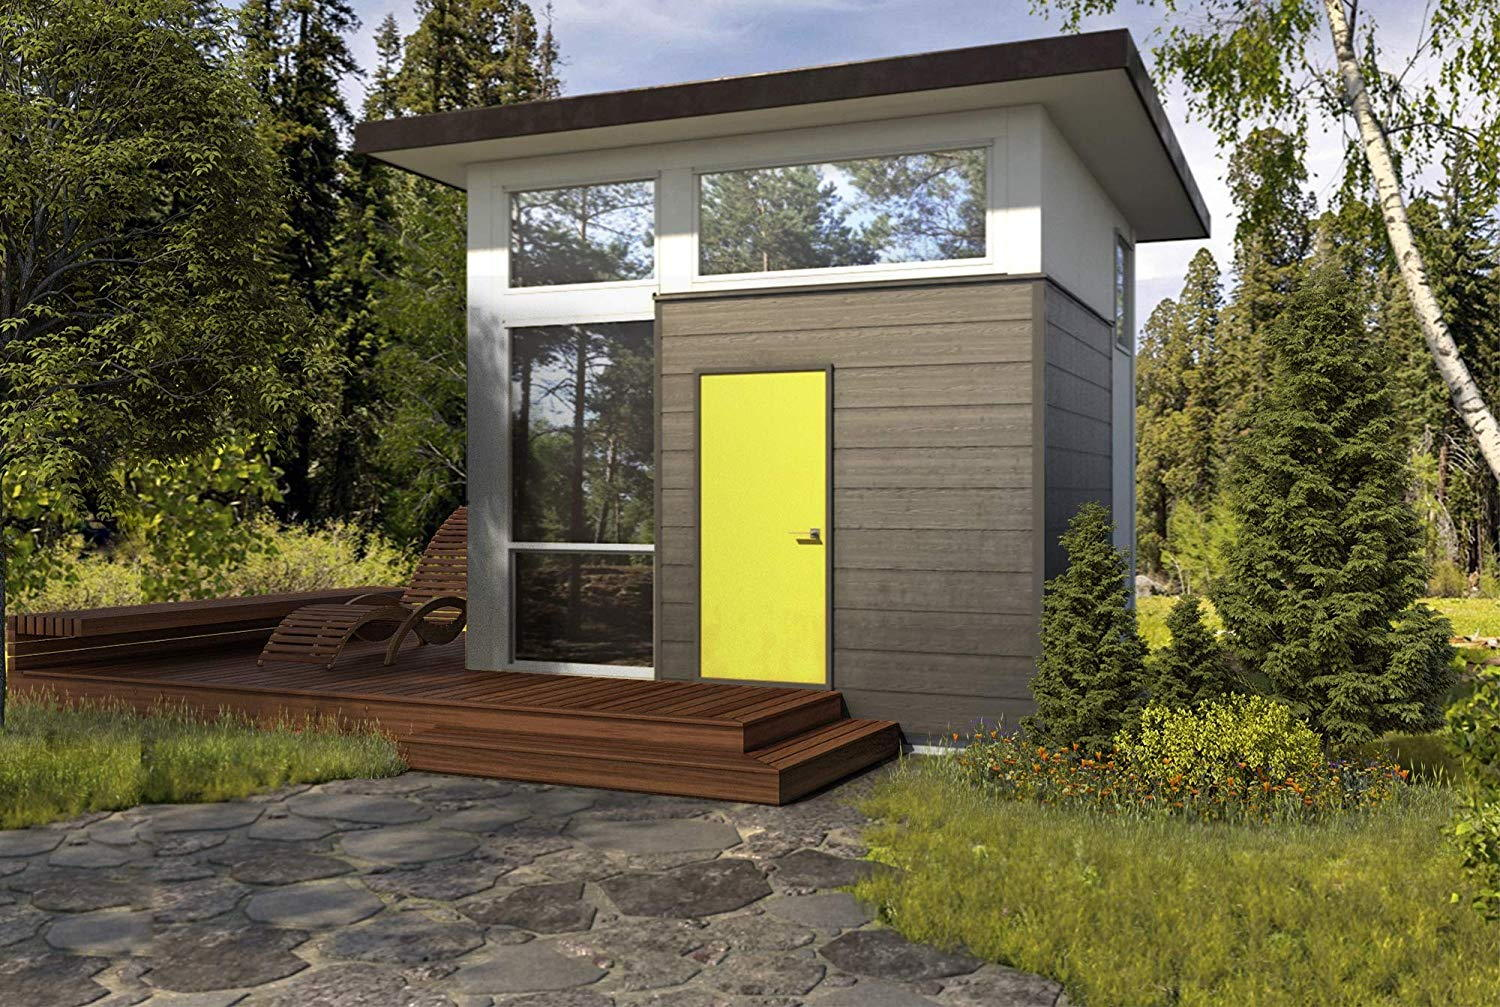 Ultra-Affordable NOMAD Micro Home For Sale on Amazon